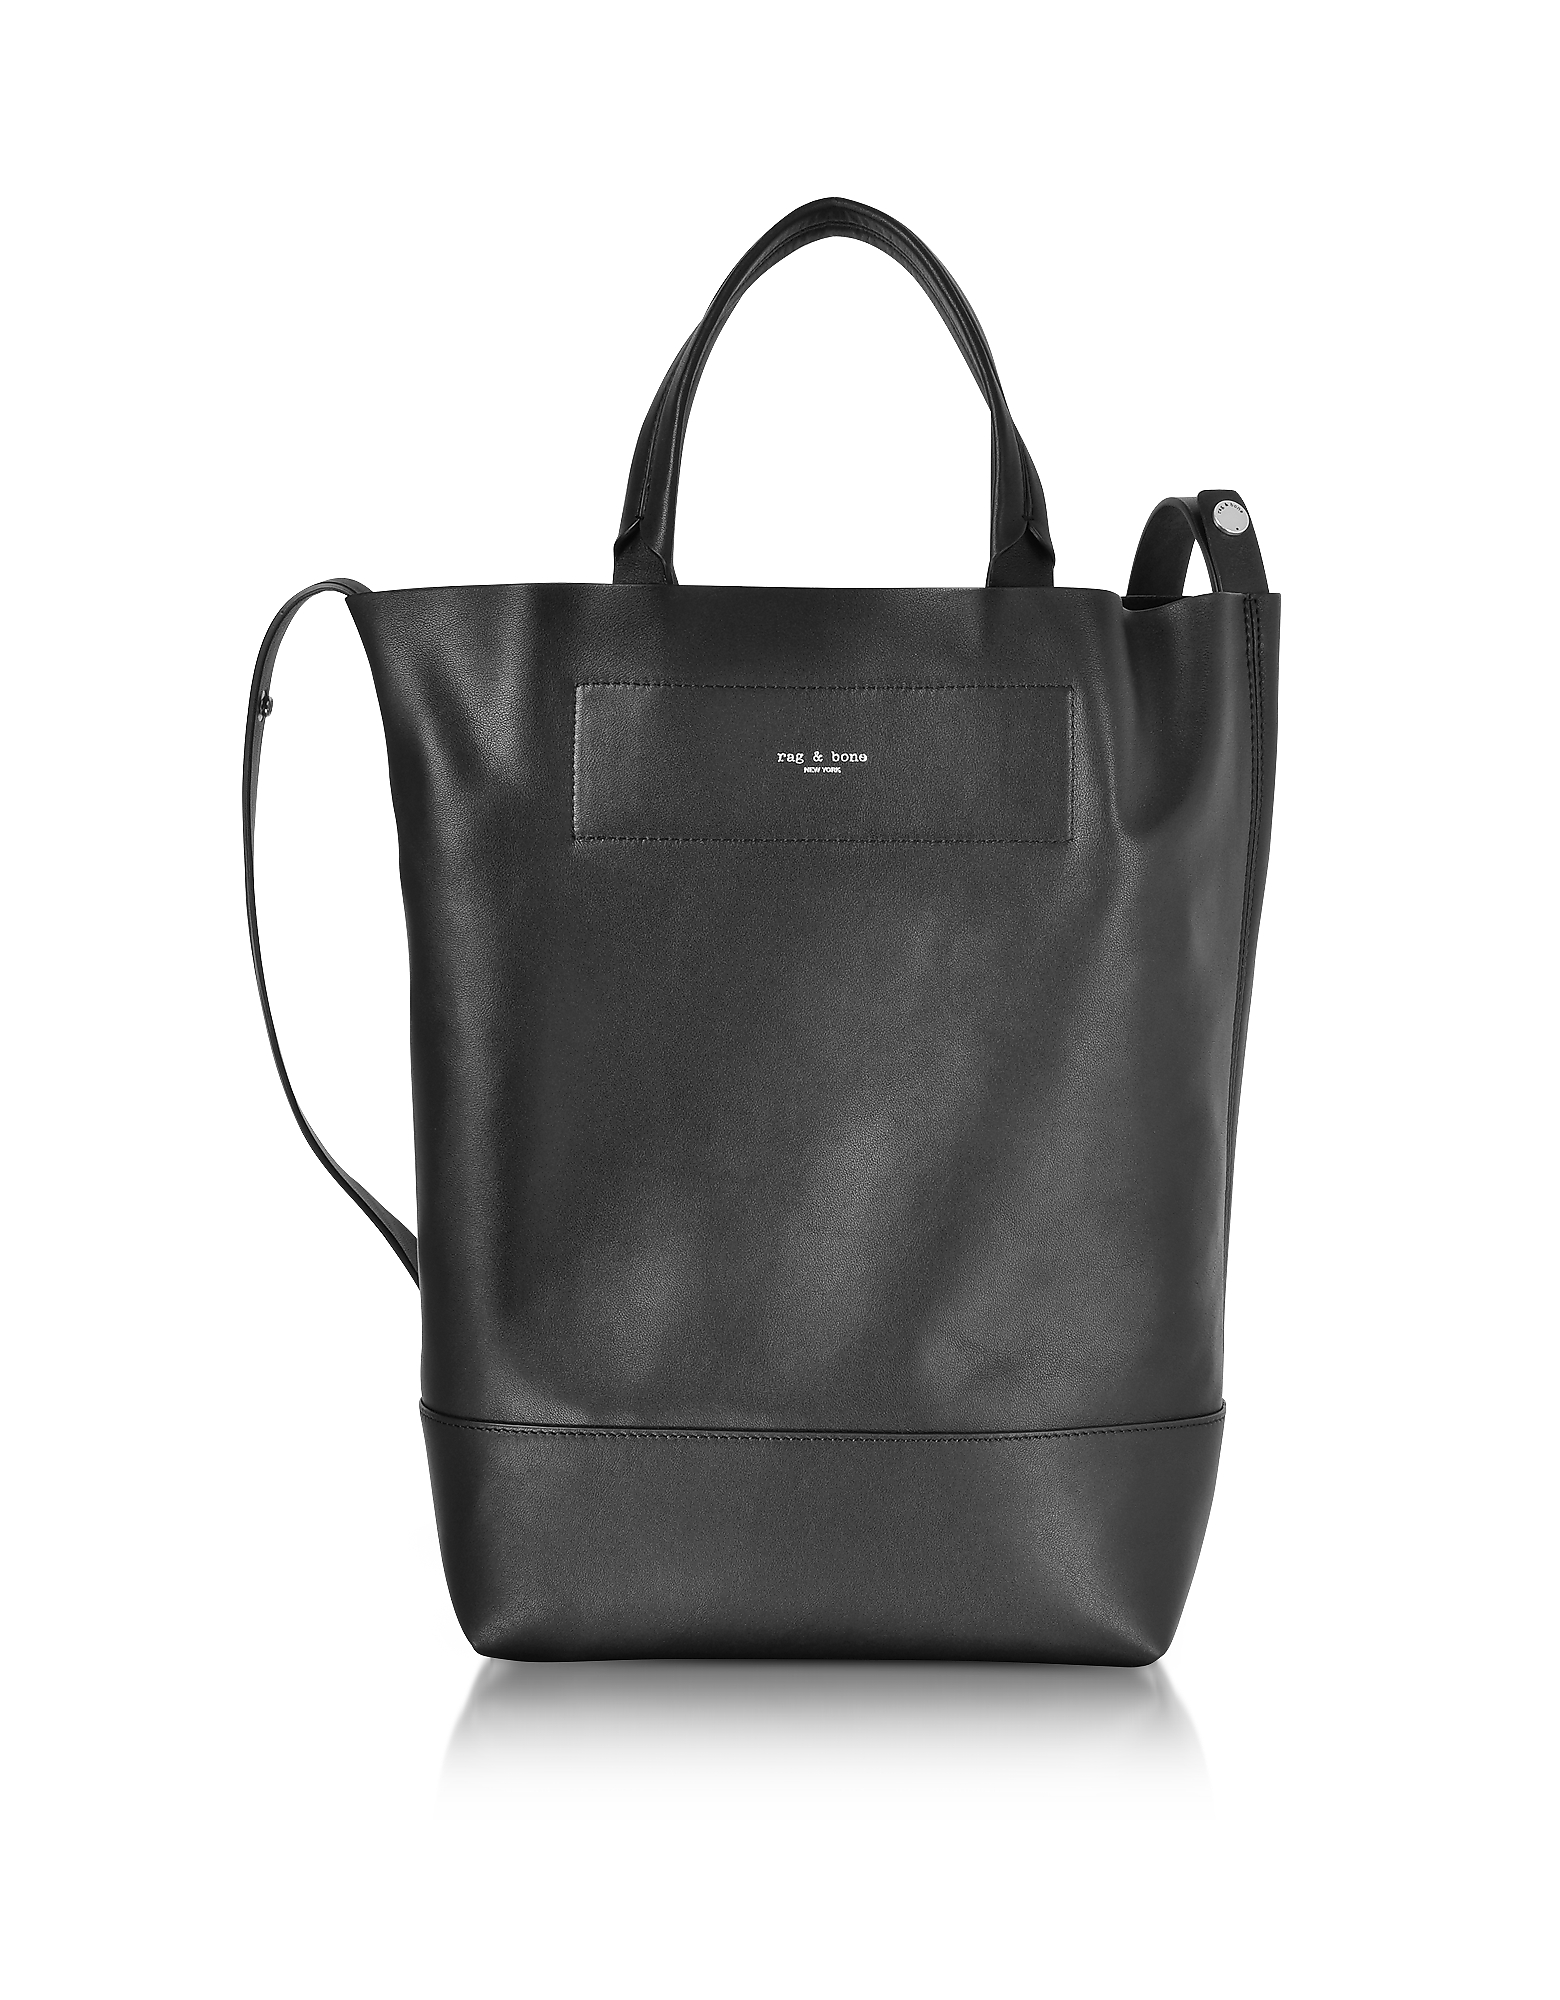 Rag & Bone Handbags, Black Leather Walker Convertible Tote Bag